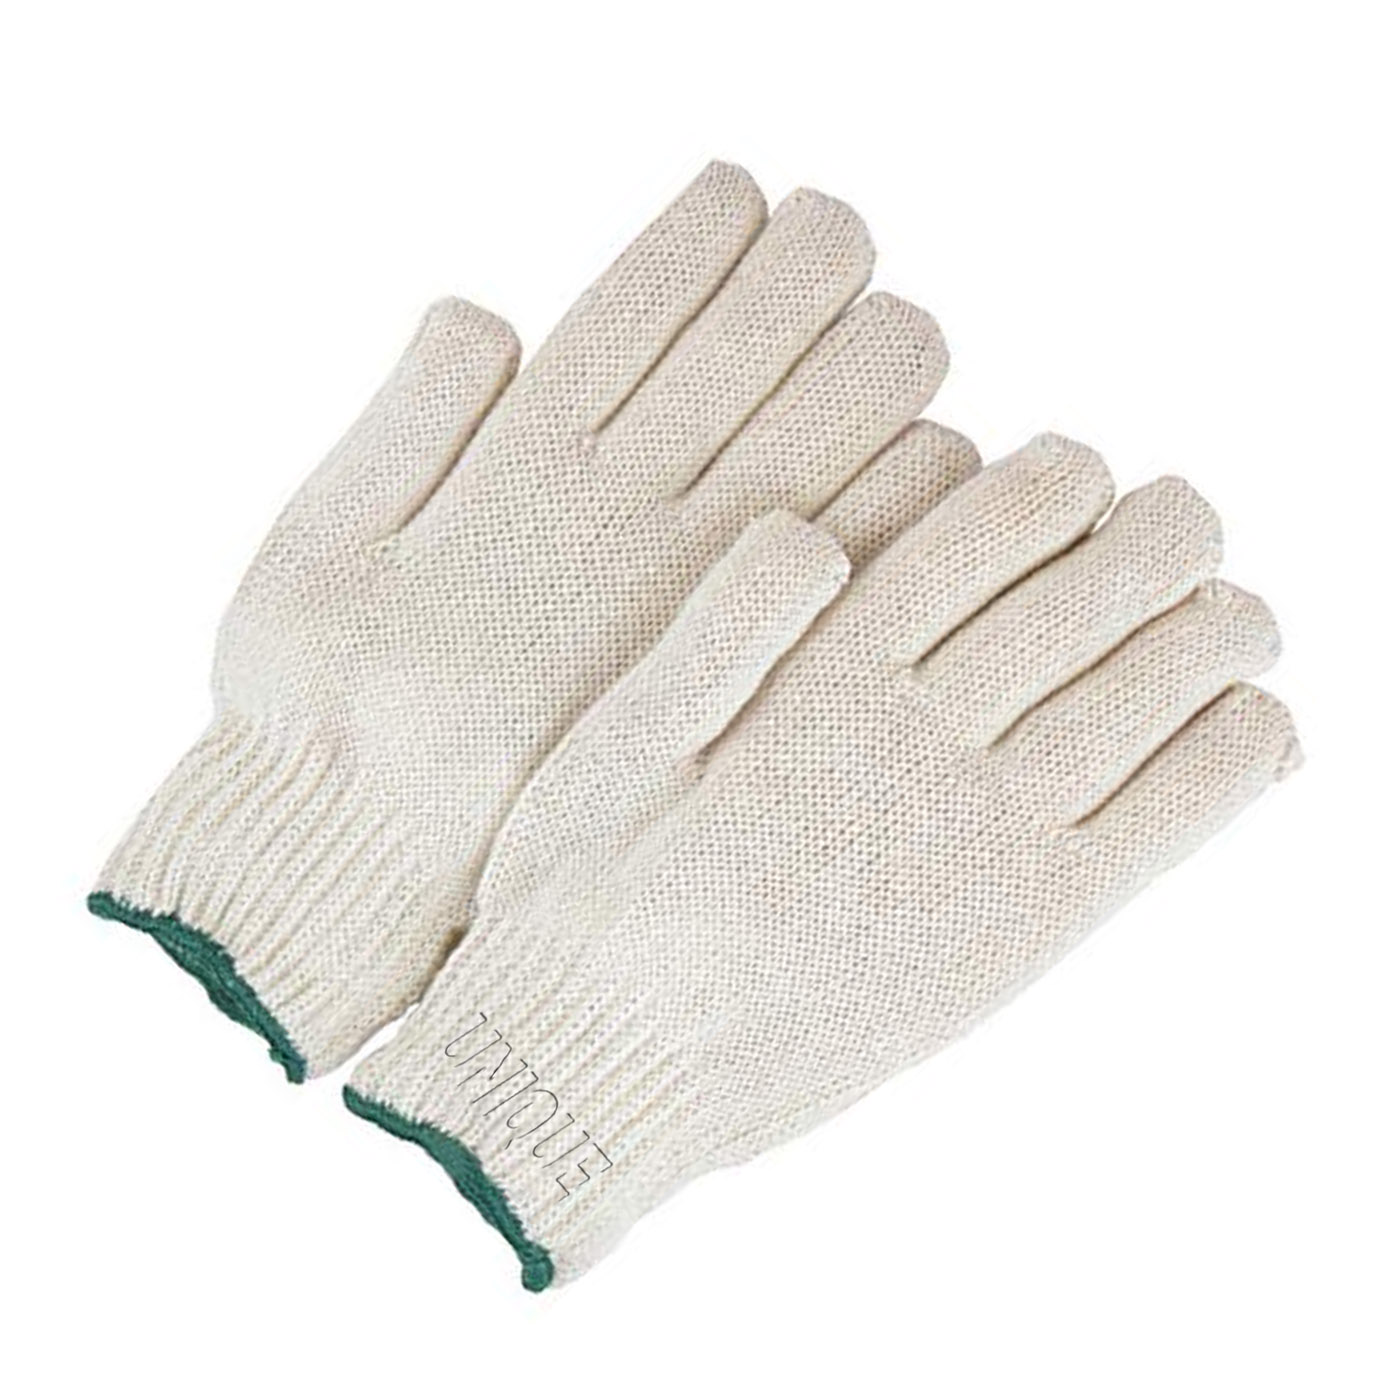 Seamless Knitted Cotton Gloves